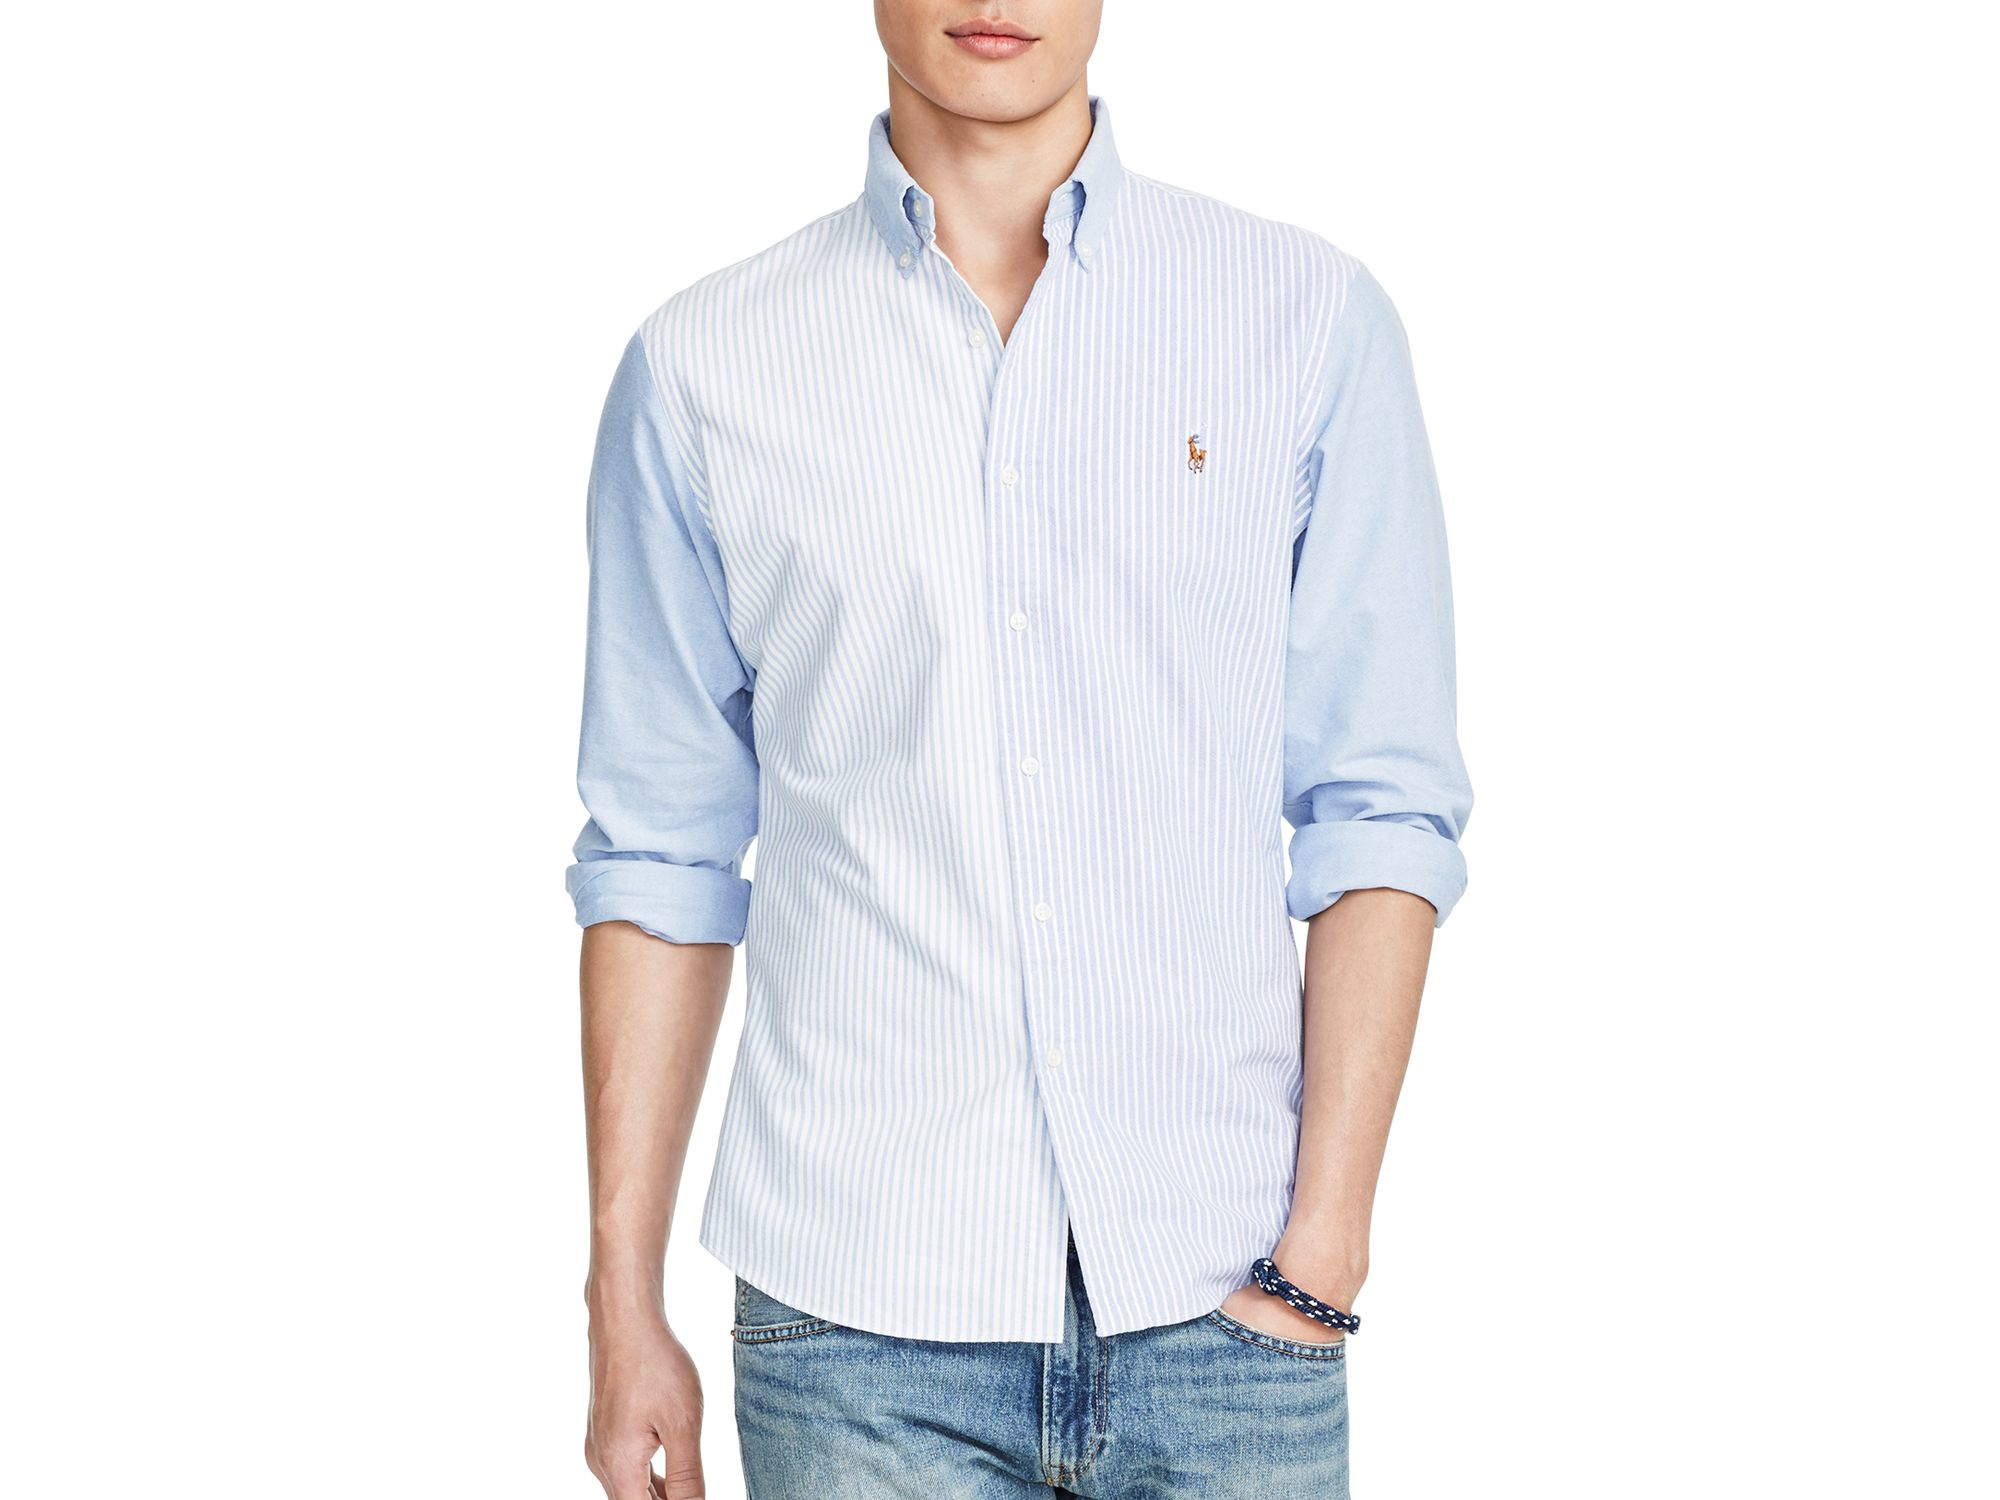 cd5ac8aab7aa22 Ralph Lauren Polo Patterned Oxford Slim Fit Button Down Shirt in ...